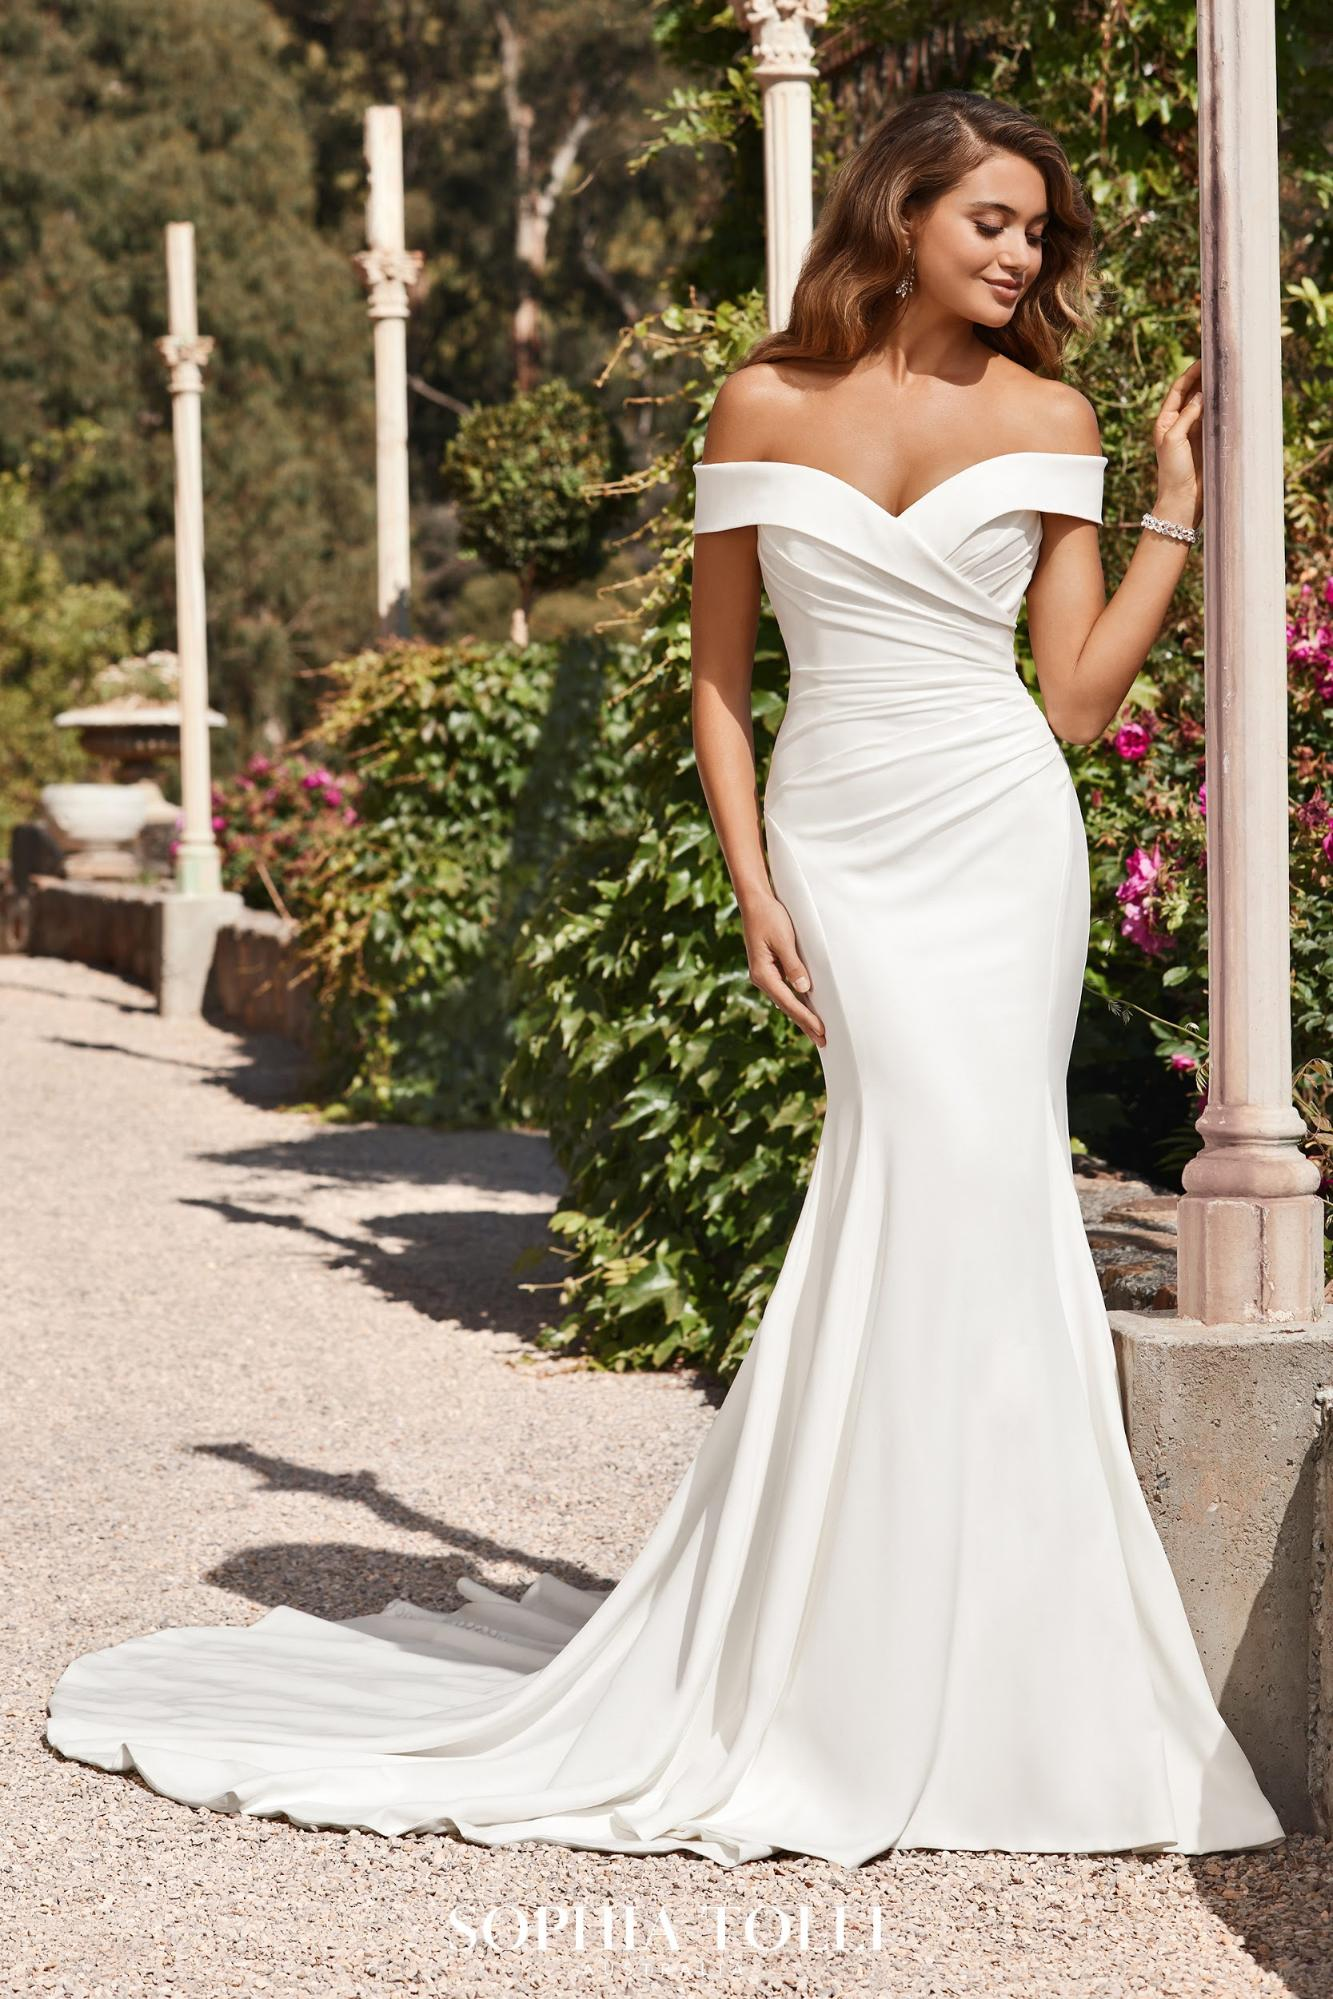 Destination Wedding Dress Trends. Desktop Image